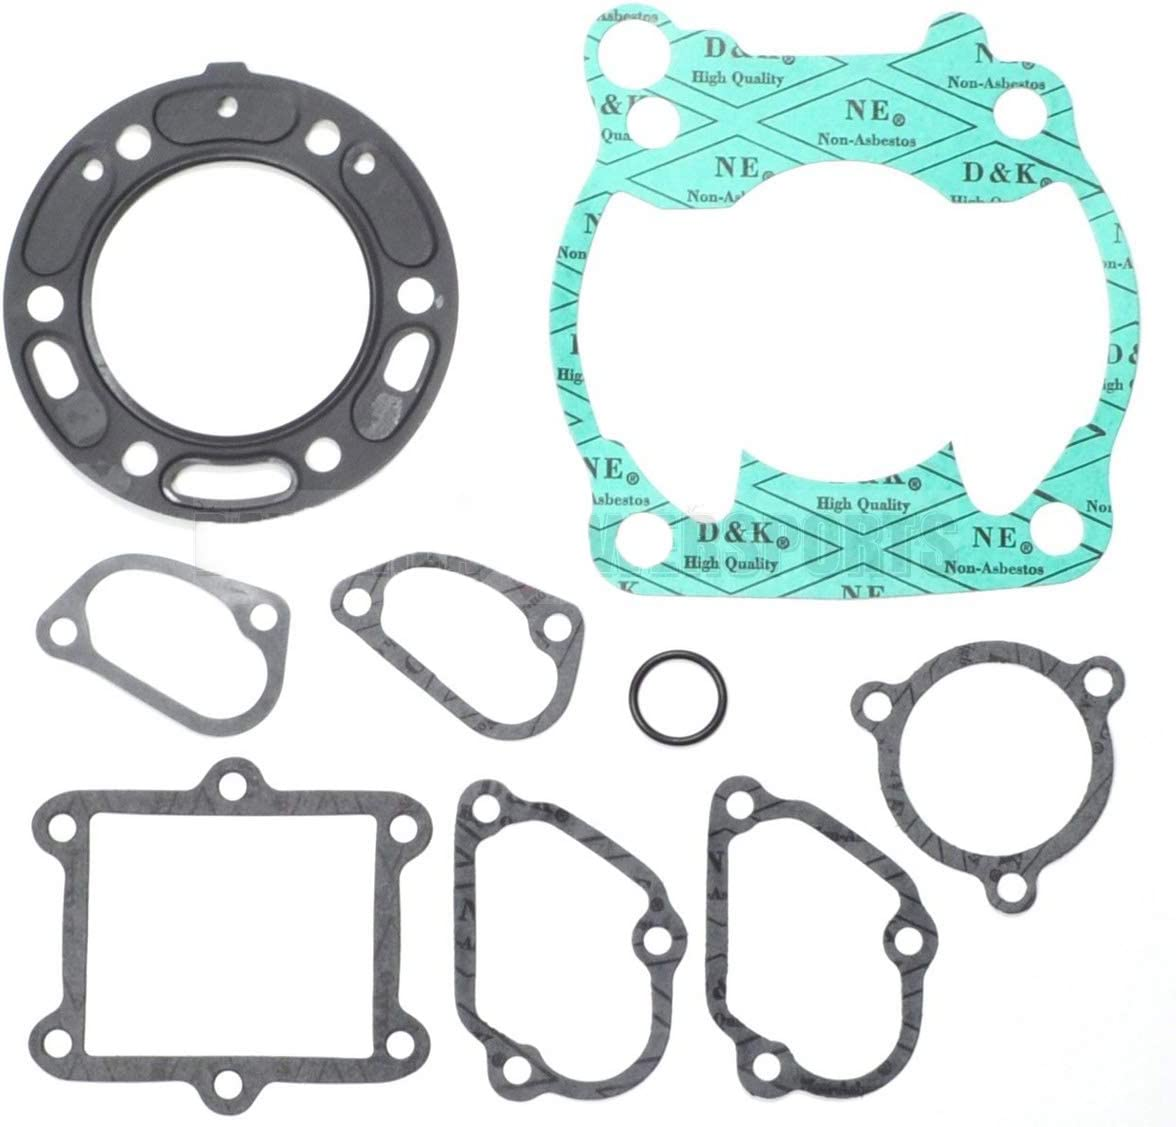 Top End Rebuild Head Cylinder Gasket Kit Honda CR125 CR 125 R 1990-1998